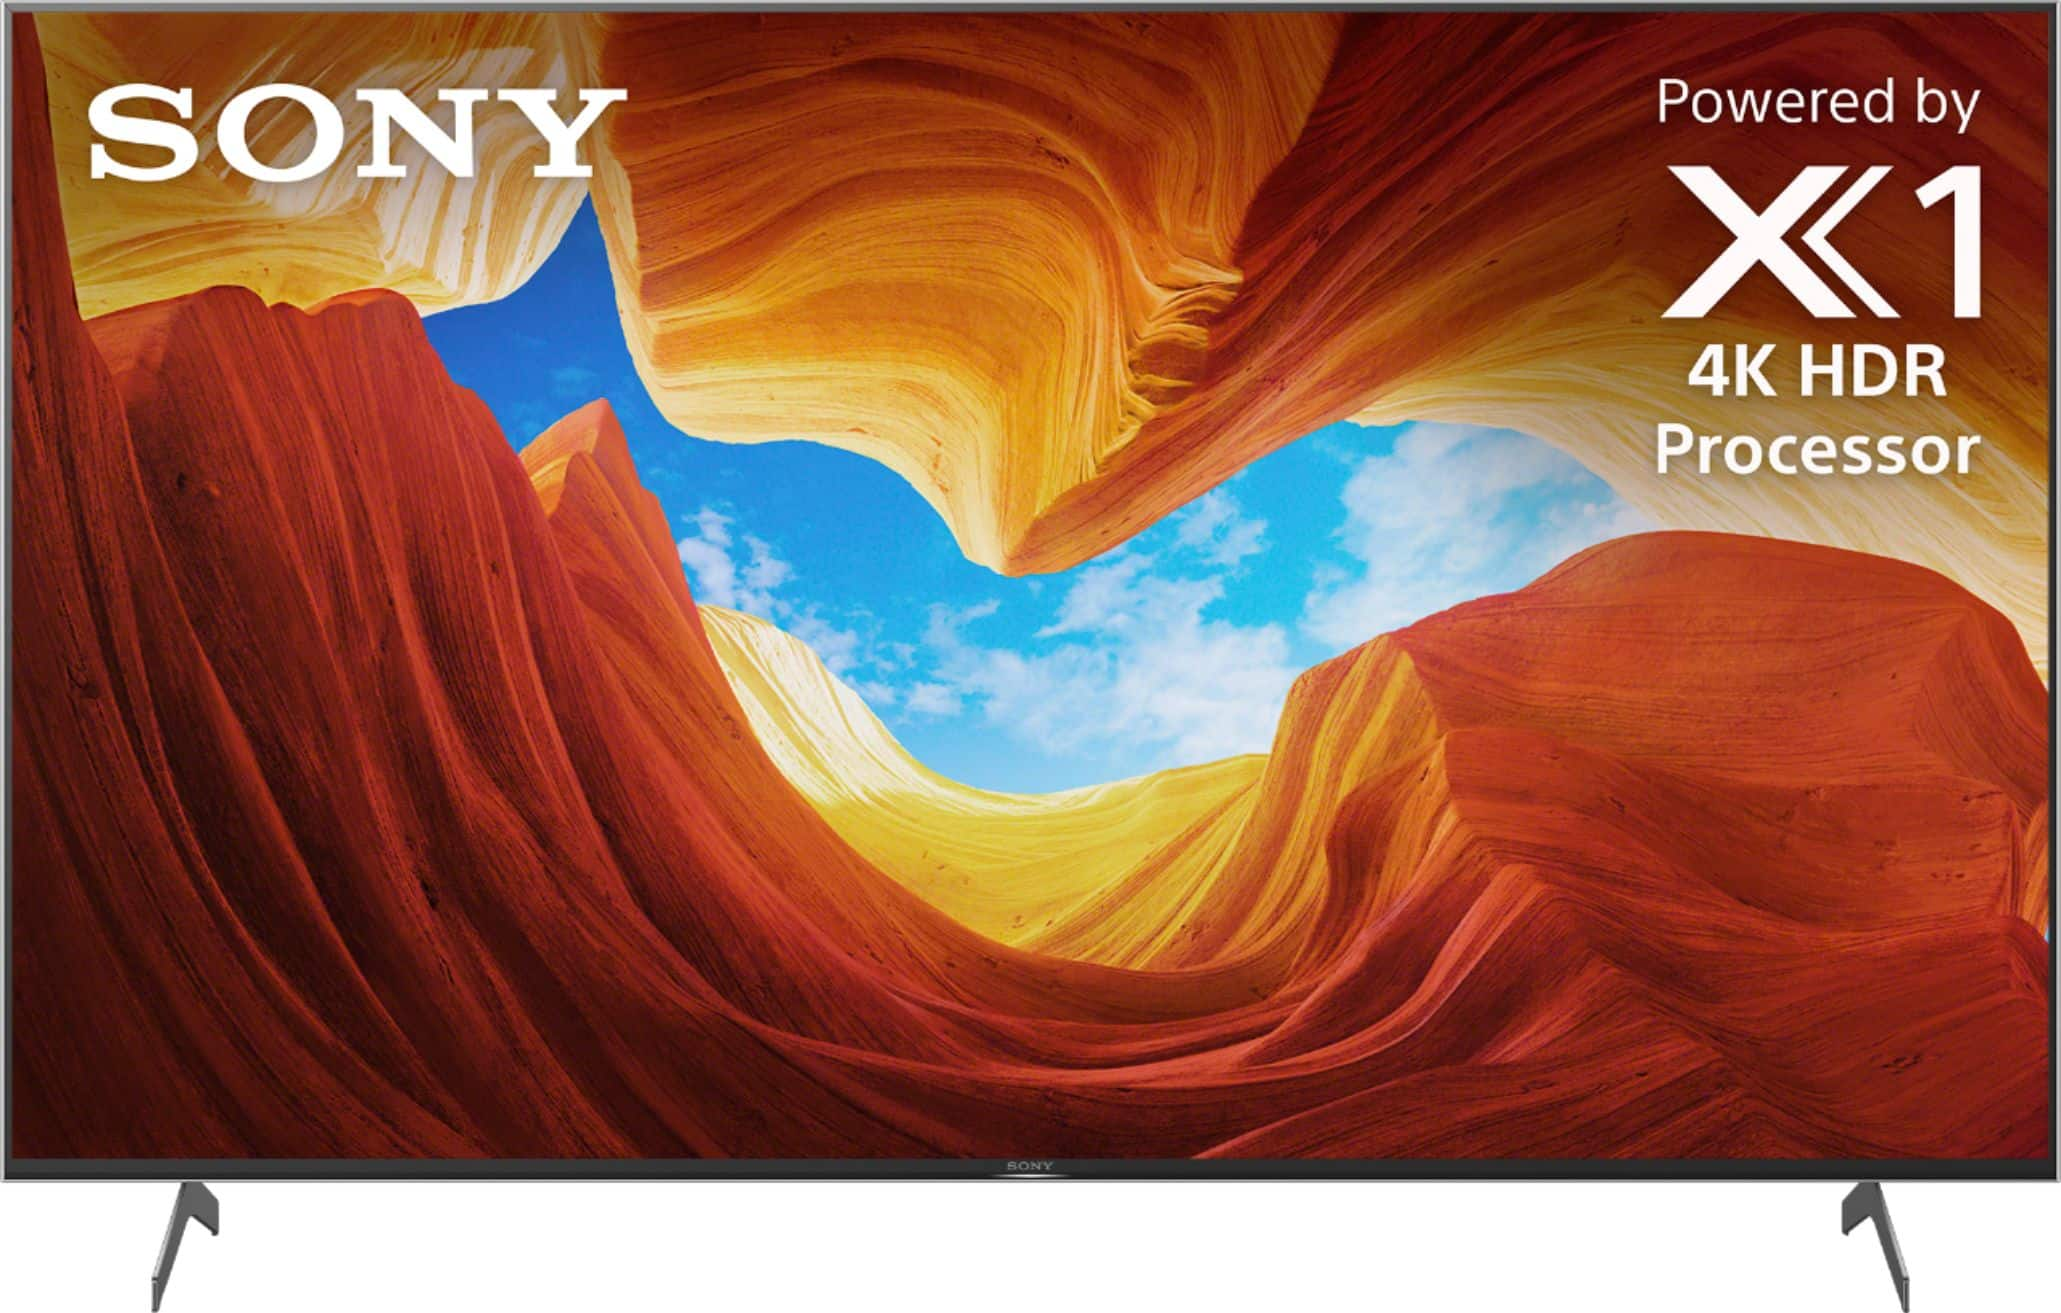 Sony X900H 65 Inch TV: 4K Ultra HD Smart LED TV with HDR- $969 for Best Buy Members